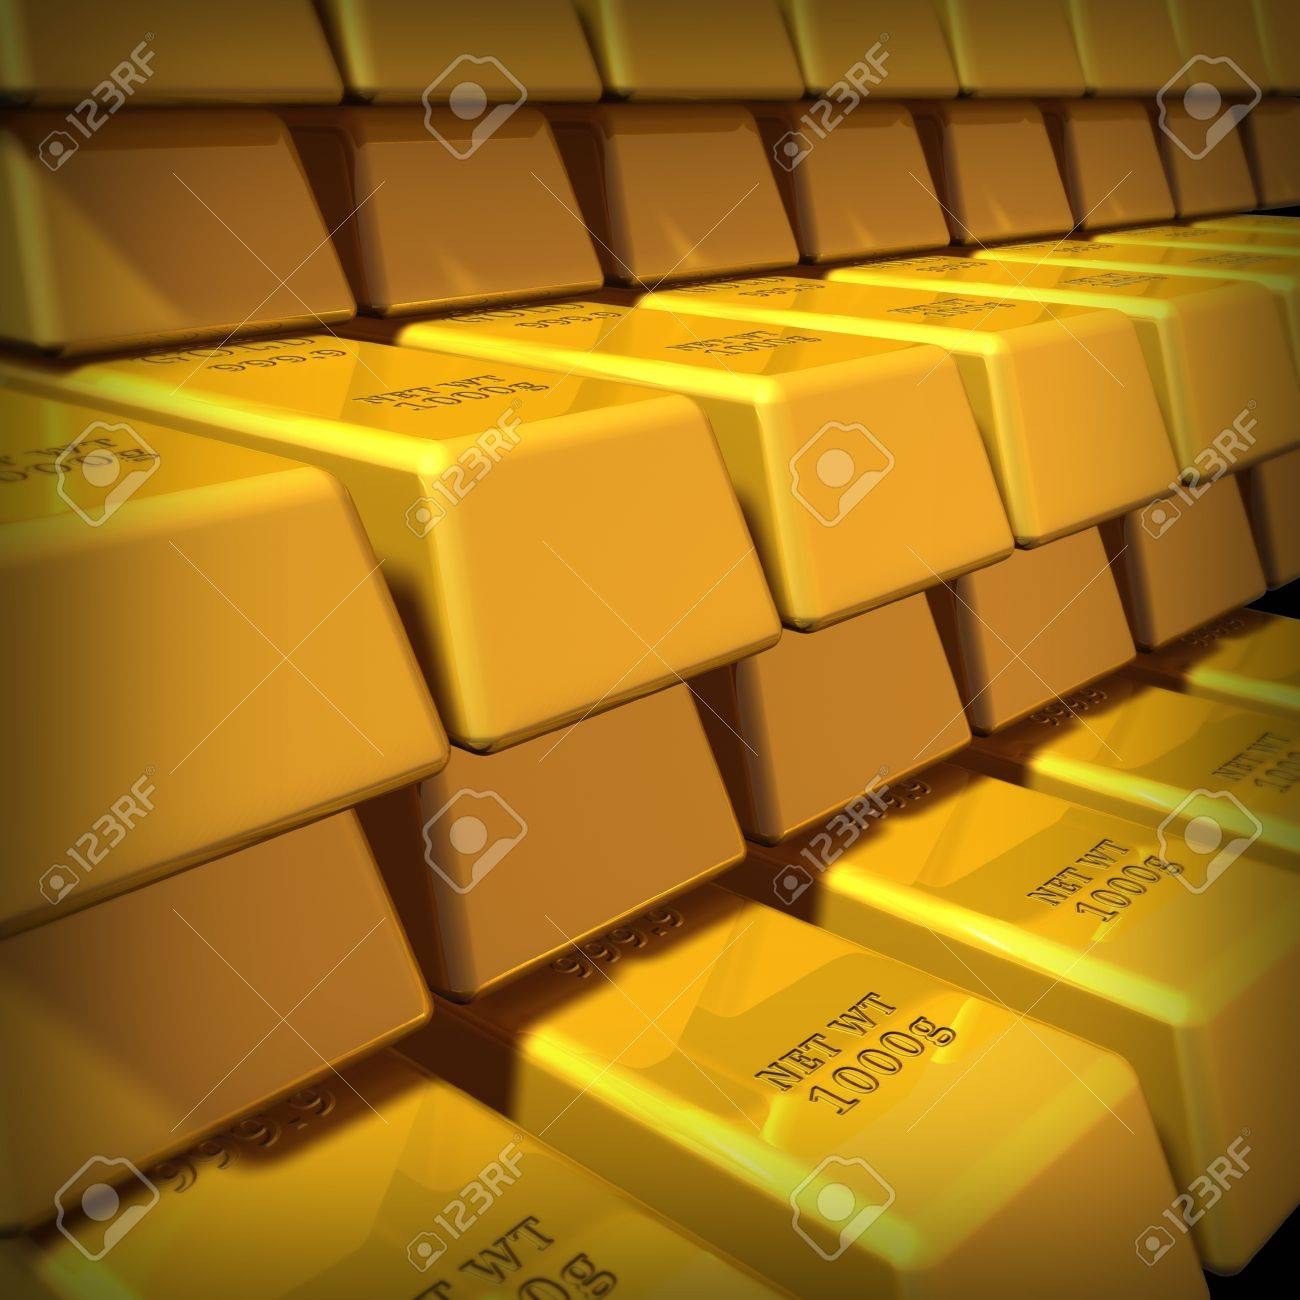 Gold bullion in a group representing commodities trading for gold bullion in a group representing commodities trading for wealth and the banking system symbol buycottarizona Image collections